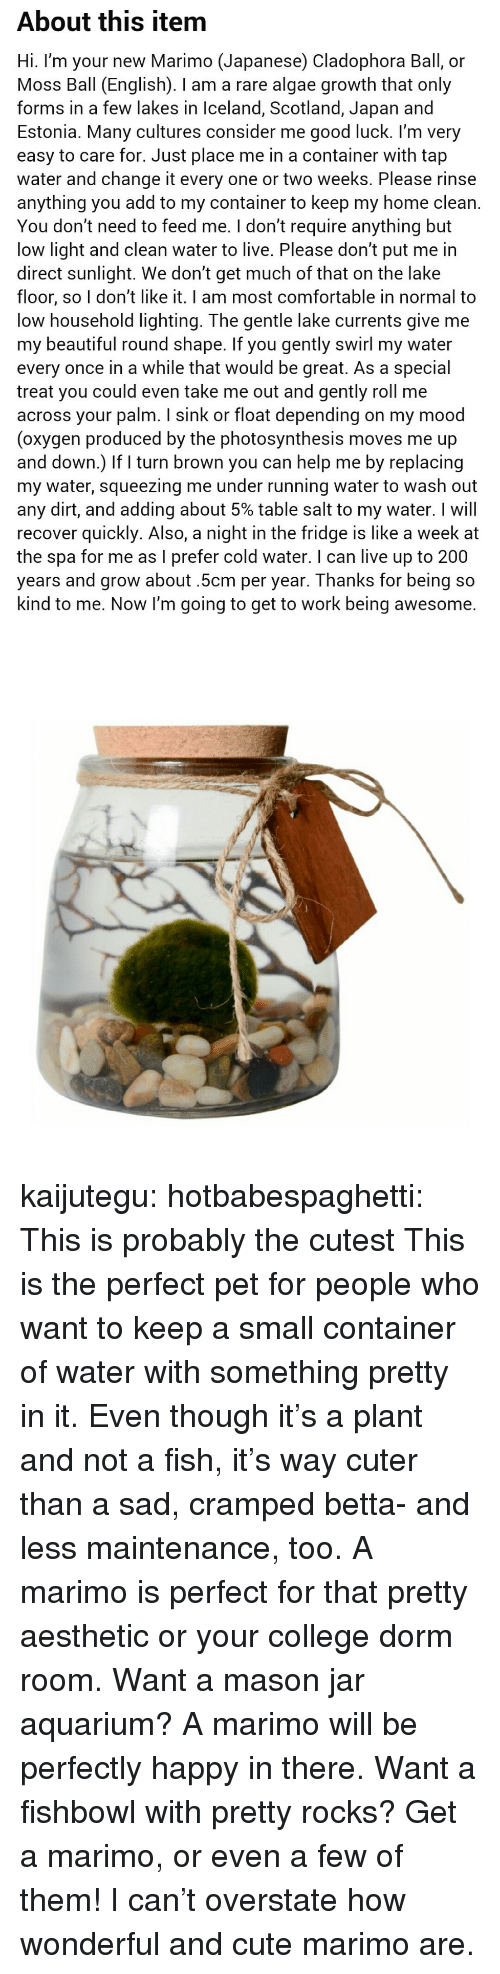 Cuter Than: About this item  Hi. I'm your new Marimo (Japanese) Cladophora Ball, or  Moss Ball (English). I am a rare algae growth that only  forms in a few lakes in Iceland, Scotland, Japan and  Estonia. Many cultures consider me good luck. l'm very  easy to care for. Just place me in a container with tap  water and change it every one or two weeks. Please rinse  anything you add to my container to keep my home clean.  You don't need to feed me. I don't require anything but  low light and clean water to live. Please don't put me in  direct sunlight. We don't get much of that on the lake  floor, so I don't like it. I am most comfortable in normal to  low household lighting. The gentle lake currents give me  my beautiful round shape. If you gently swirl my water  every once in a while that would be great. As a special  treat you could even take me out and gently roll me  across your palm. I sink or float depending on my mood  (oxygen produced by the photosynthesis moves me up  and down.) If turn brown you can help me by replacing  my water, squeezing me under running water to wash out  any dirt, and adding about 5% table salt to my water. I will  recover quickly. Also, a night in the fridge is like a week at  the spa for me as I prefer cold water. I can live up to 200  years and grow about.5cm per year. Thanks for being so  kind to me. Now I'm going to get to work being awesome. kaijutegu: hotbabespaghetti: This is probably the cutest  This is the perfect pet for people who want to keep a small container of water with something pretty in it. Even though it's a plant and not a fish, it's way cuter than a sad, cramped betta- and less maintenance, too. A marimo is perfect for that pretty aesthetic or your college dorm room. Want a mason jar aquarium? A marimo will be perfectly happy in there. Want a fishbowl with pretty rocks? Get a marimo, or even a few of them! I can't overstate how wonderful and cute marimo are.